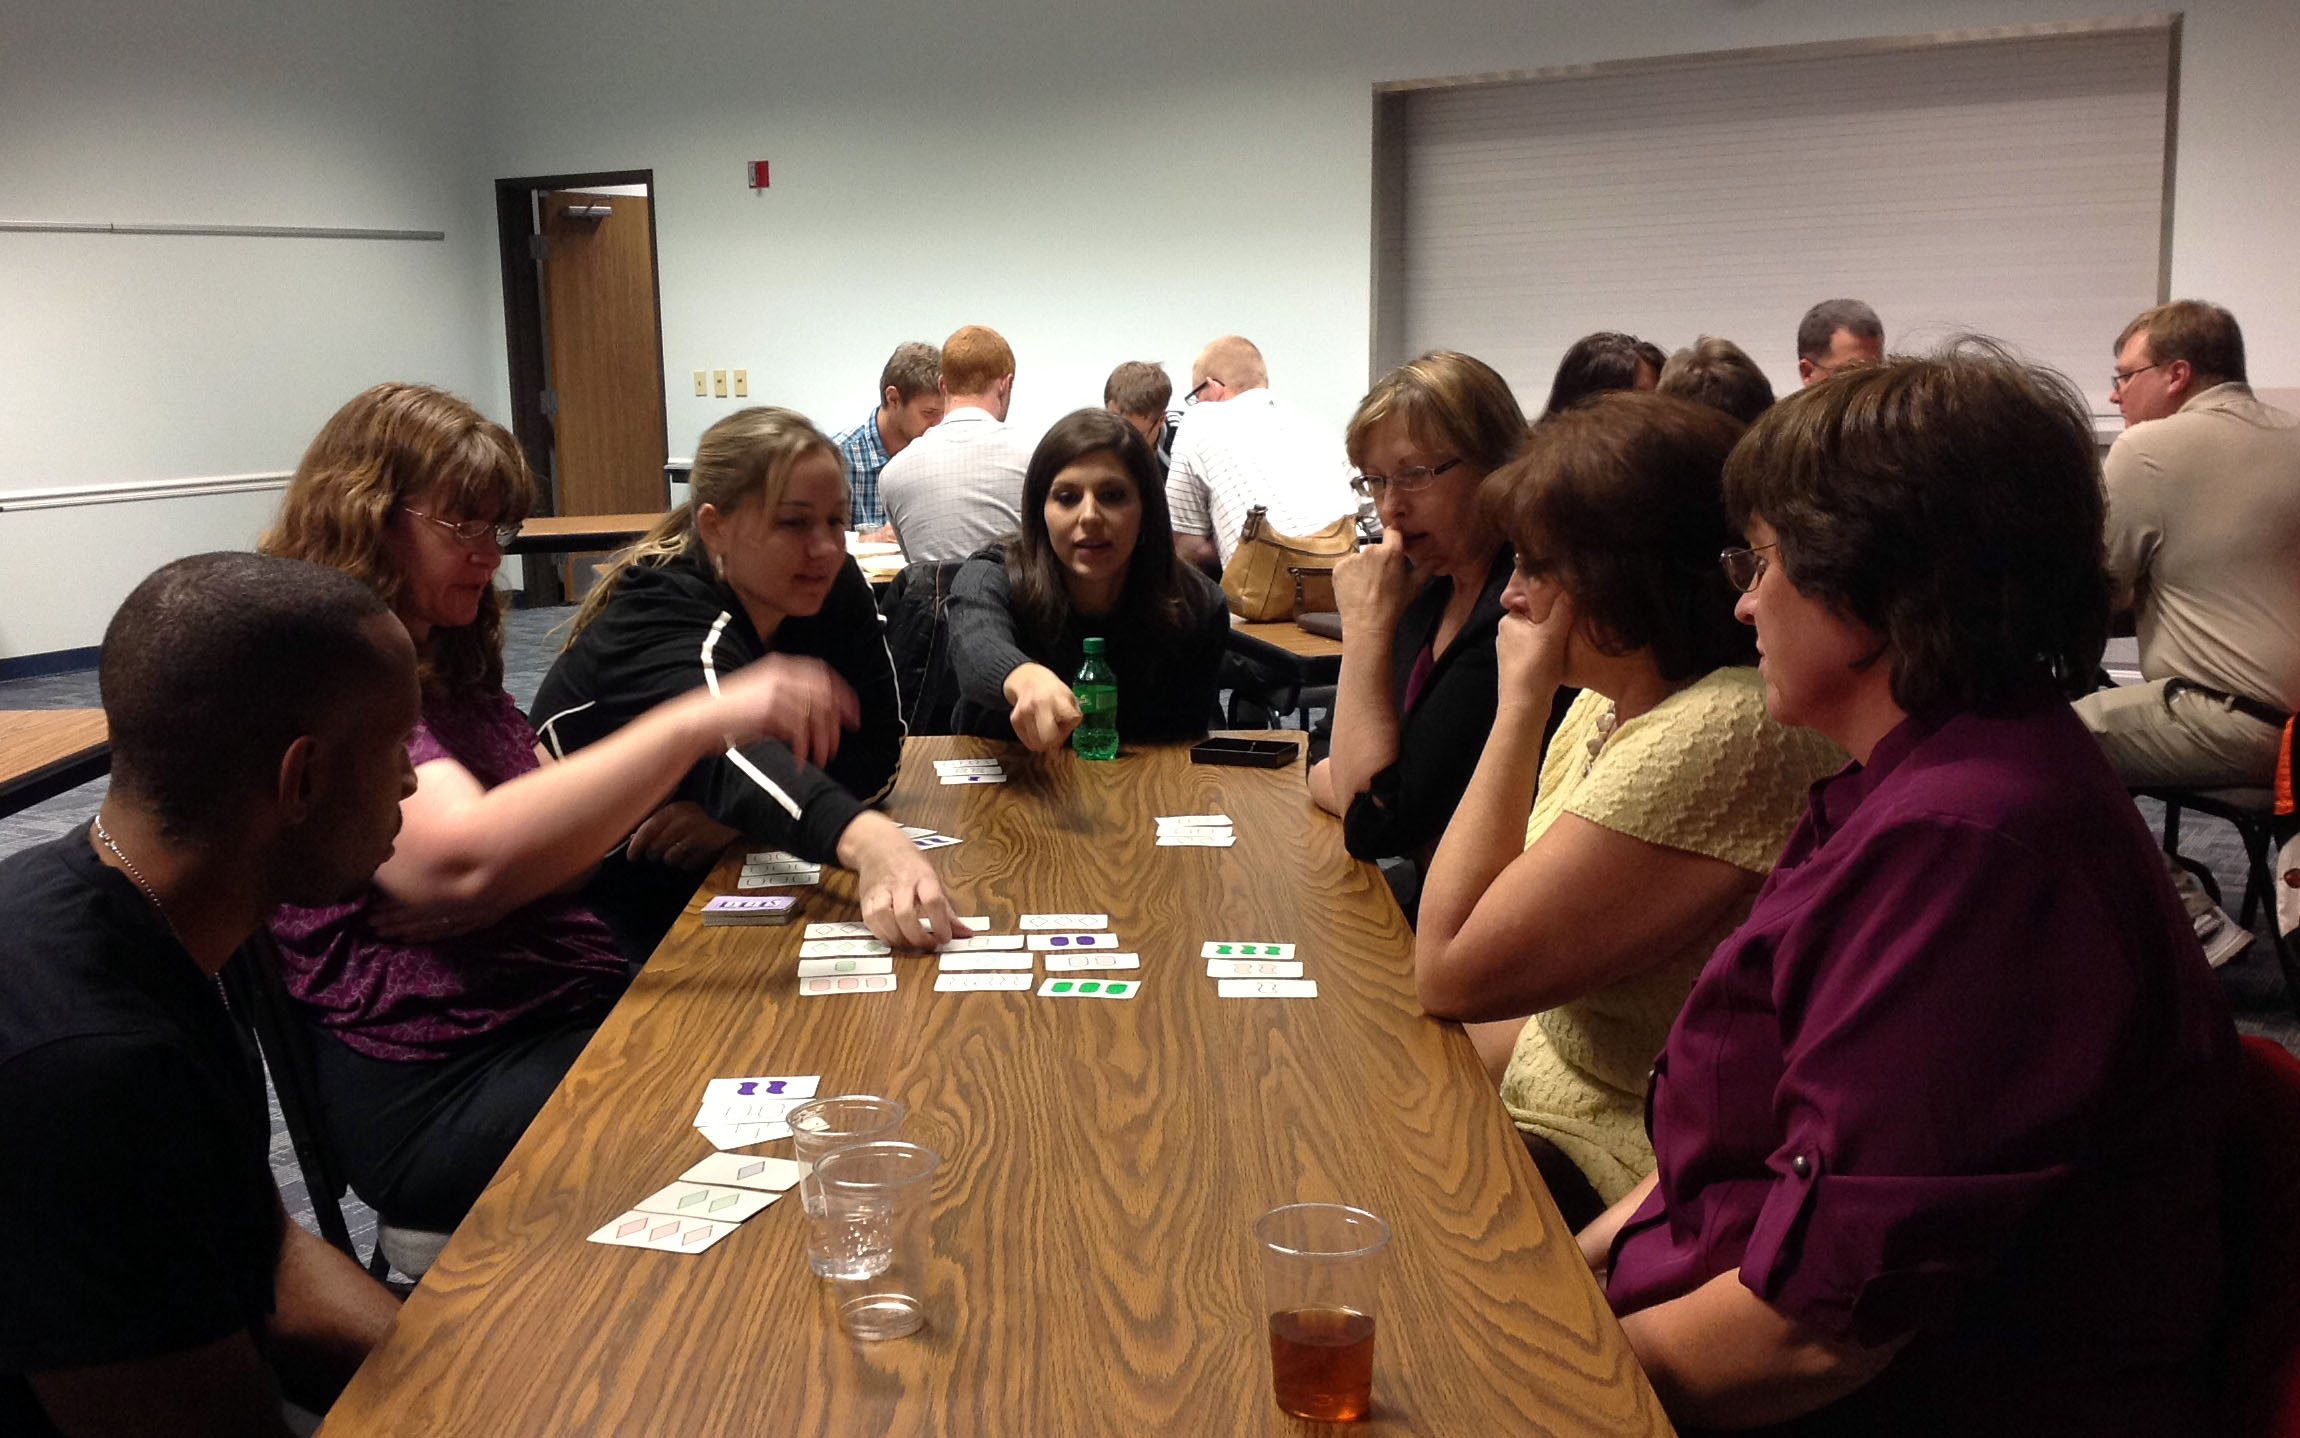 Dinner and a Math Problem met in Scottsbluff on Dec. 3.